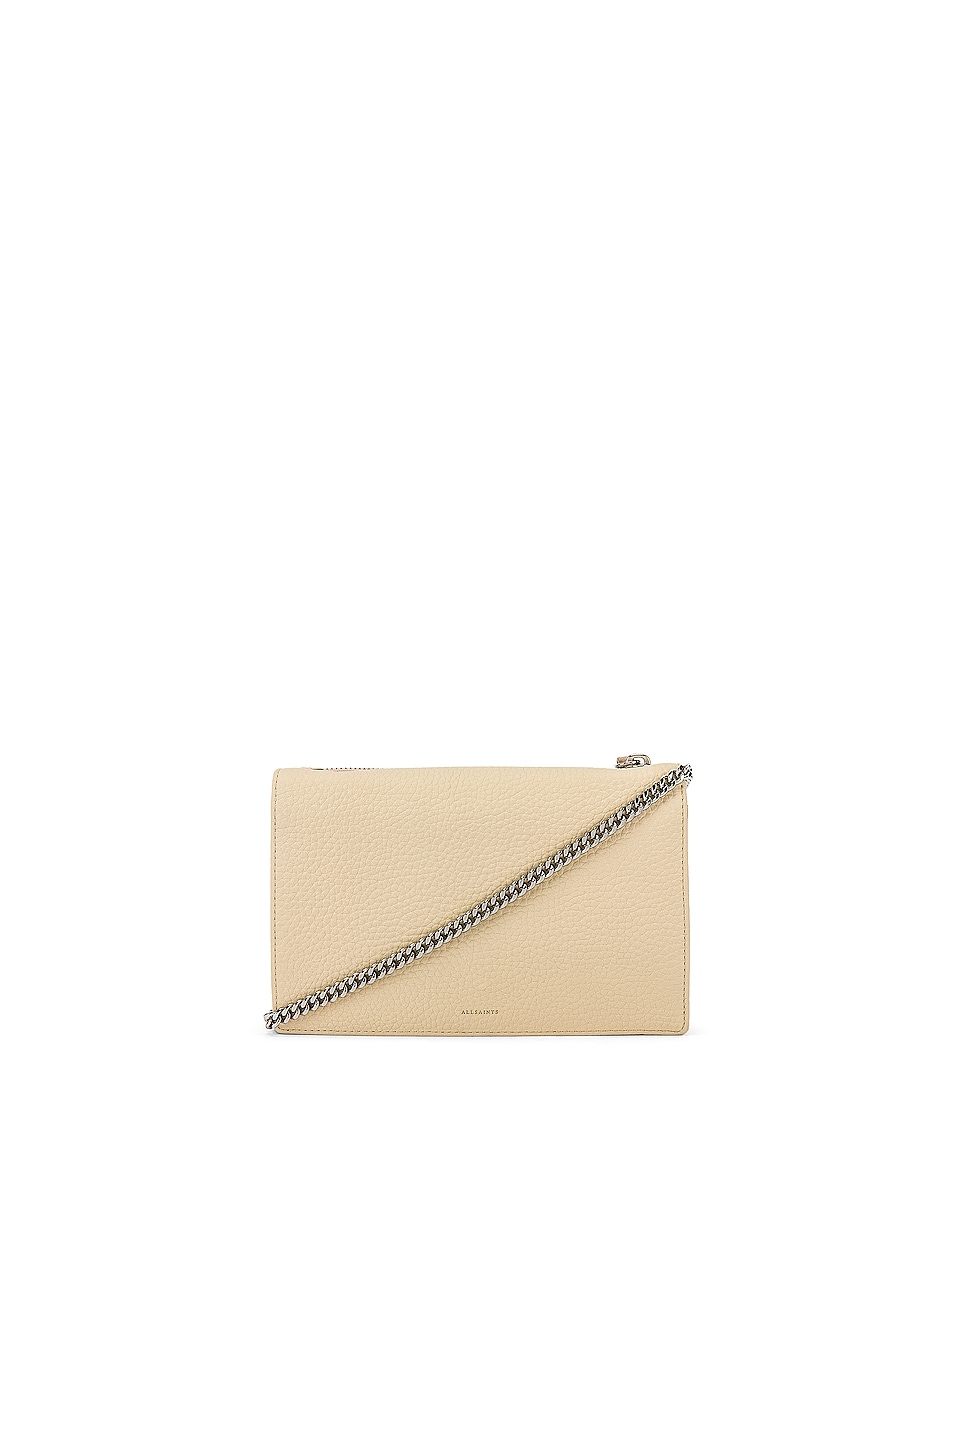 ALLSAINTS Fetch Chain Wallet Crossbody in Sand Beige & Sugar Beige